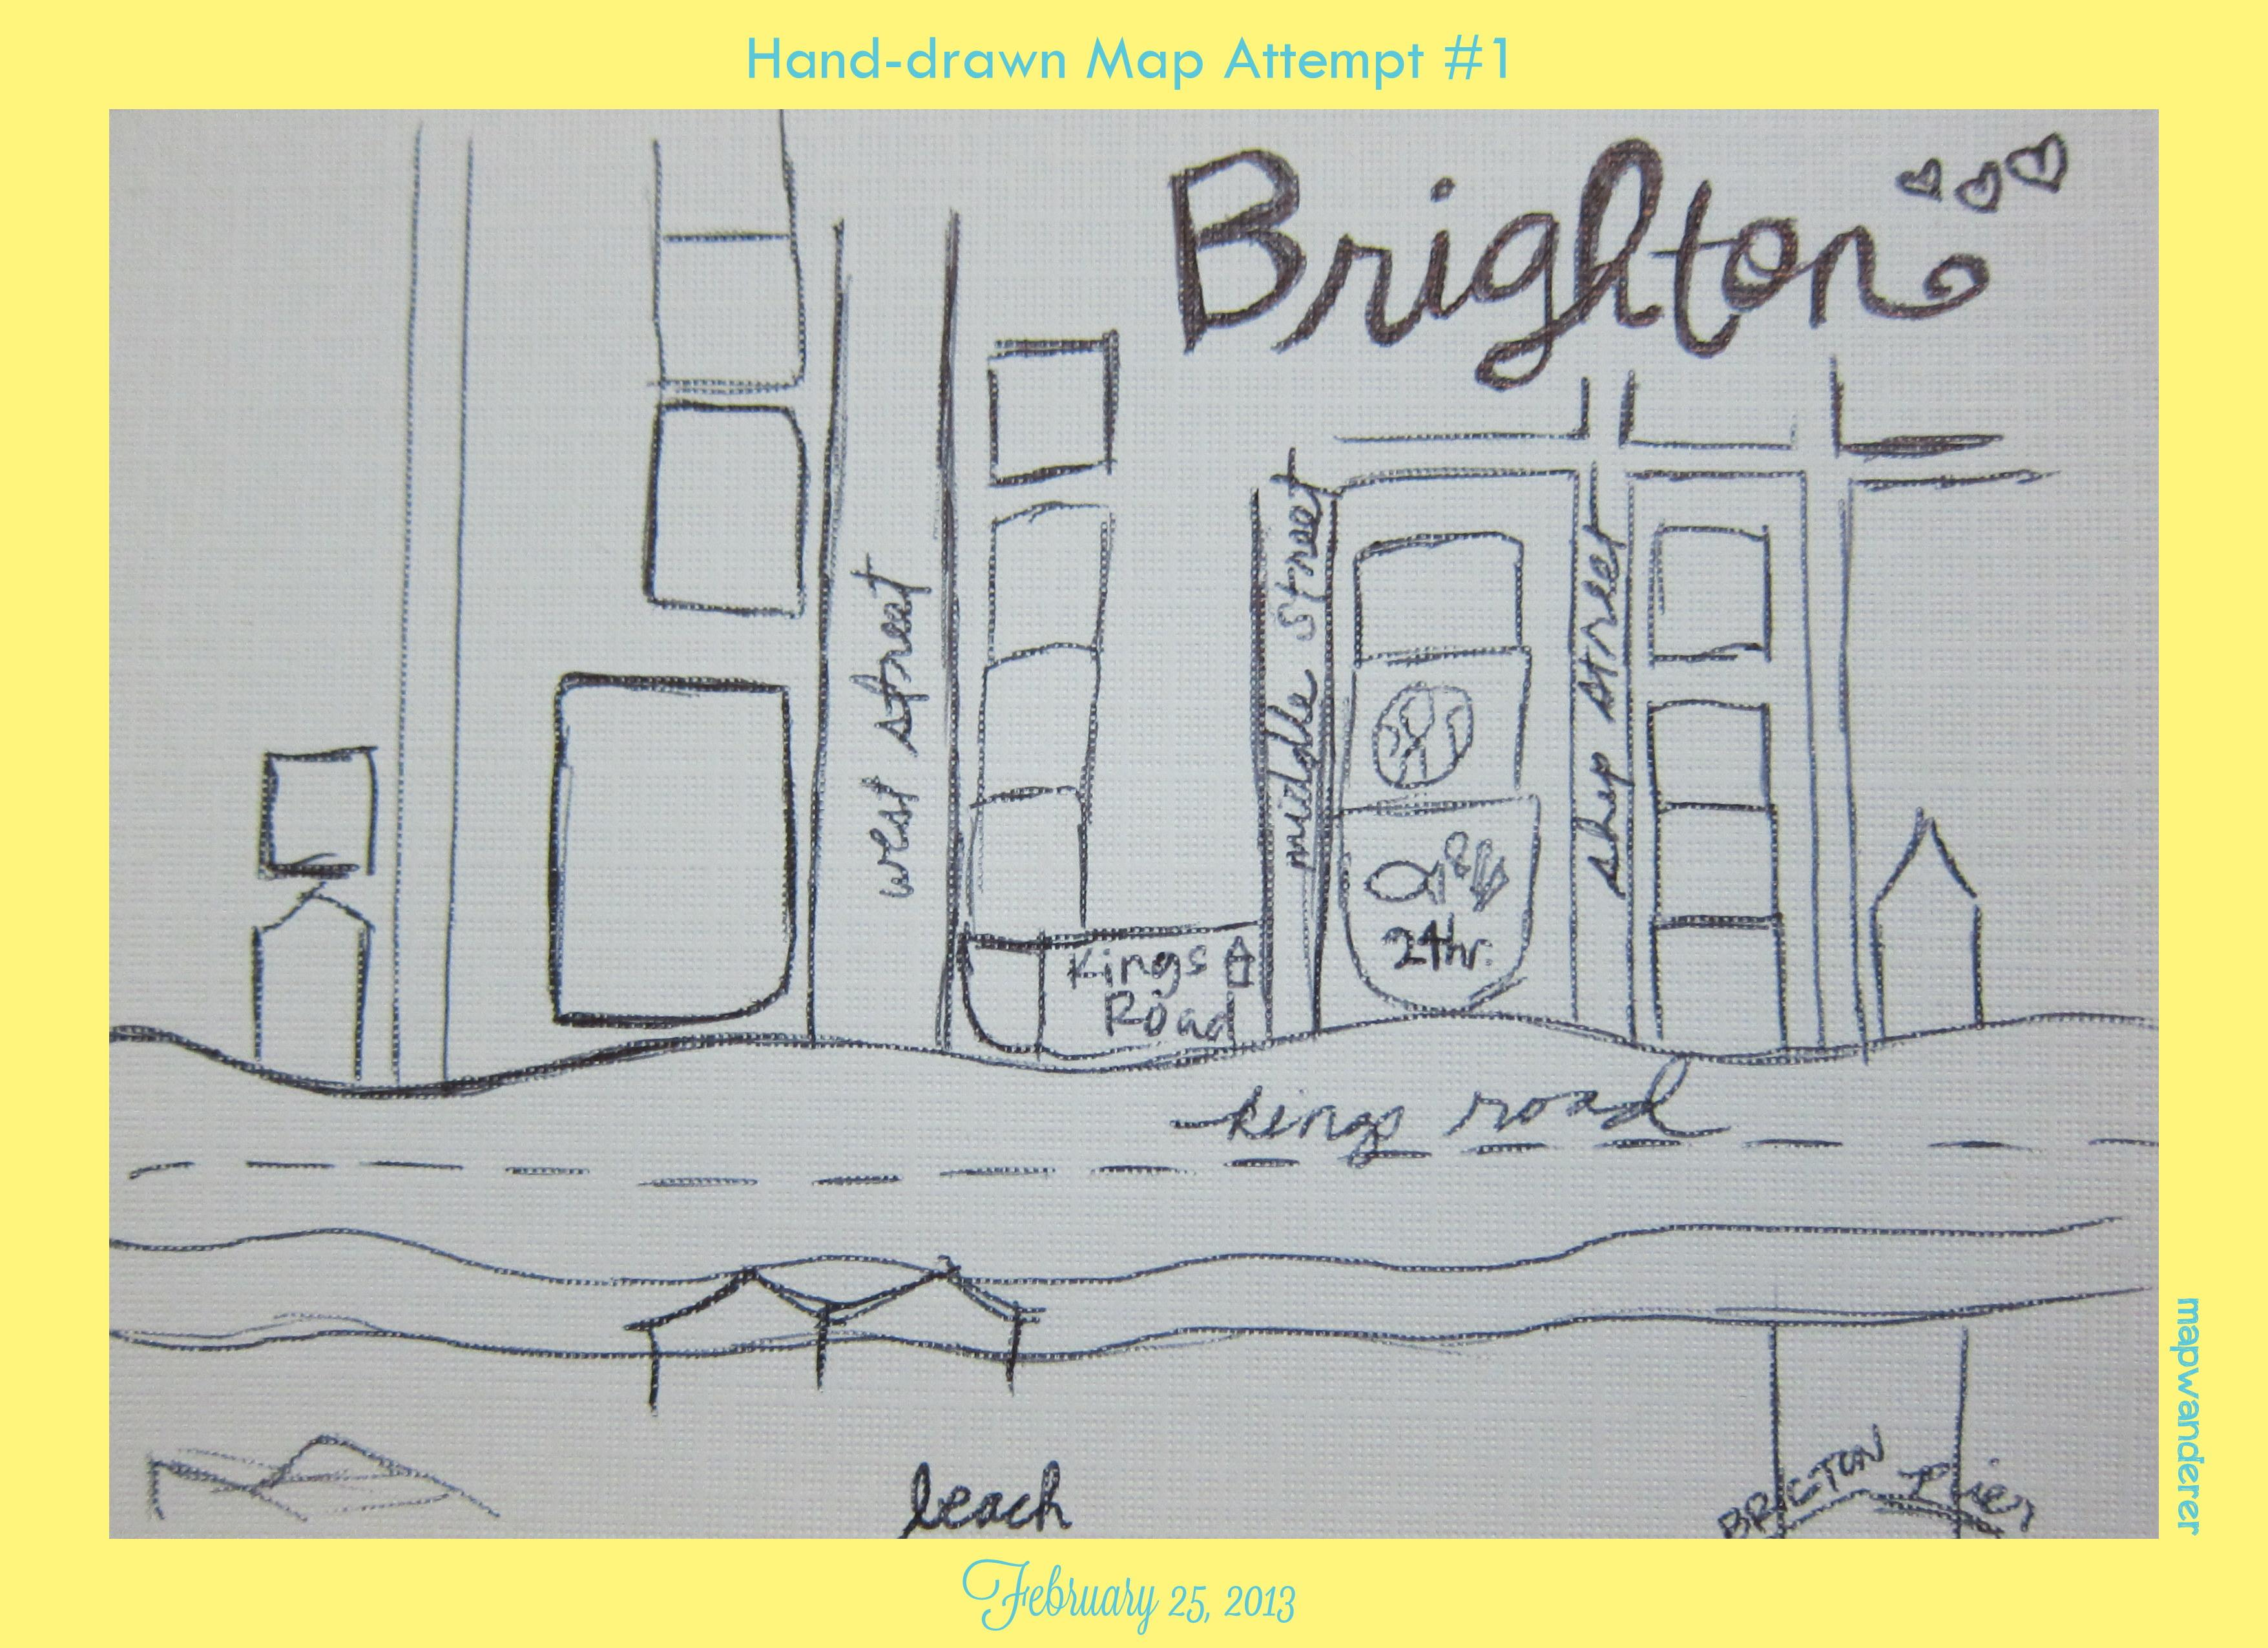 Walks through the seaside town of Brighton, England! - image 3 - student project